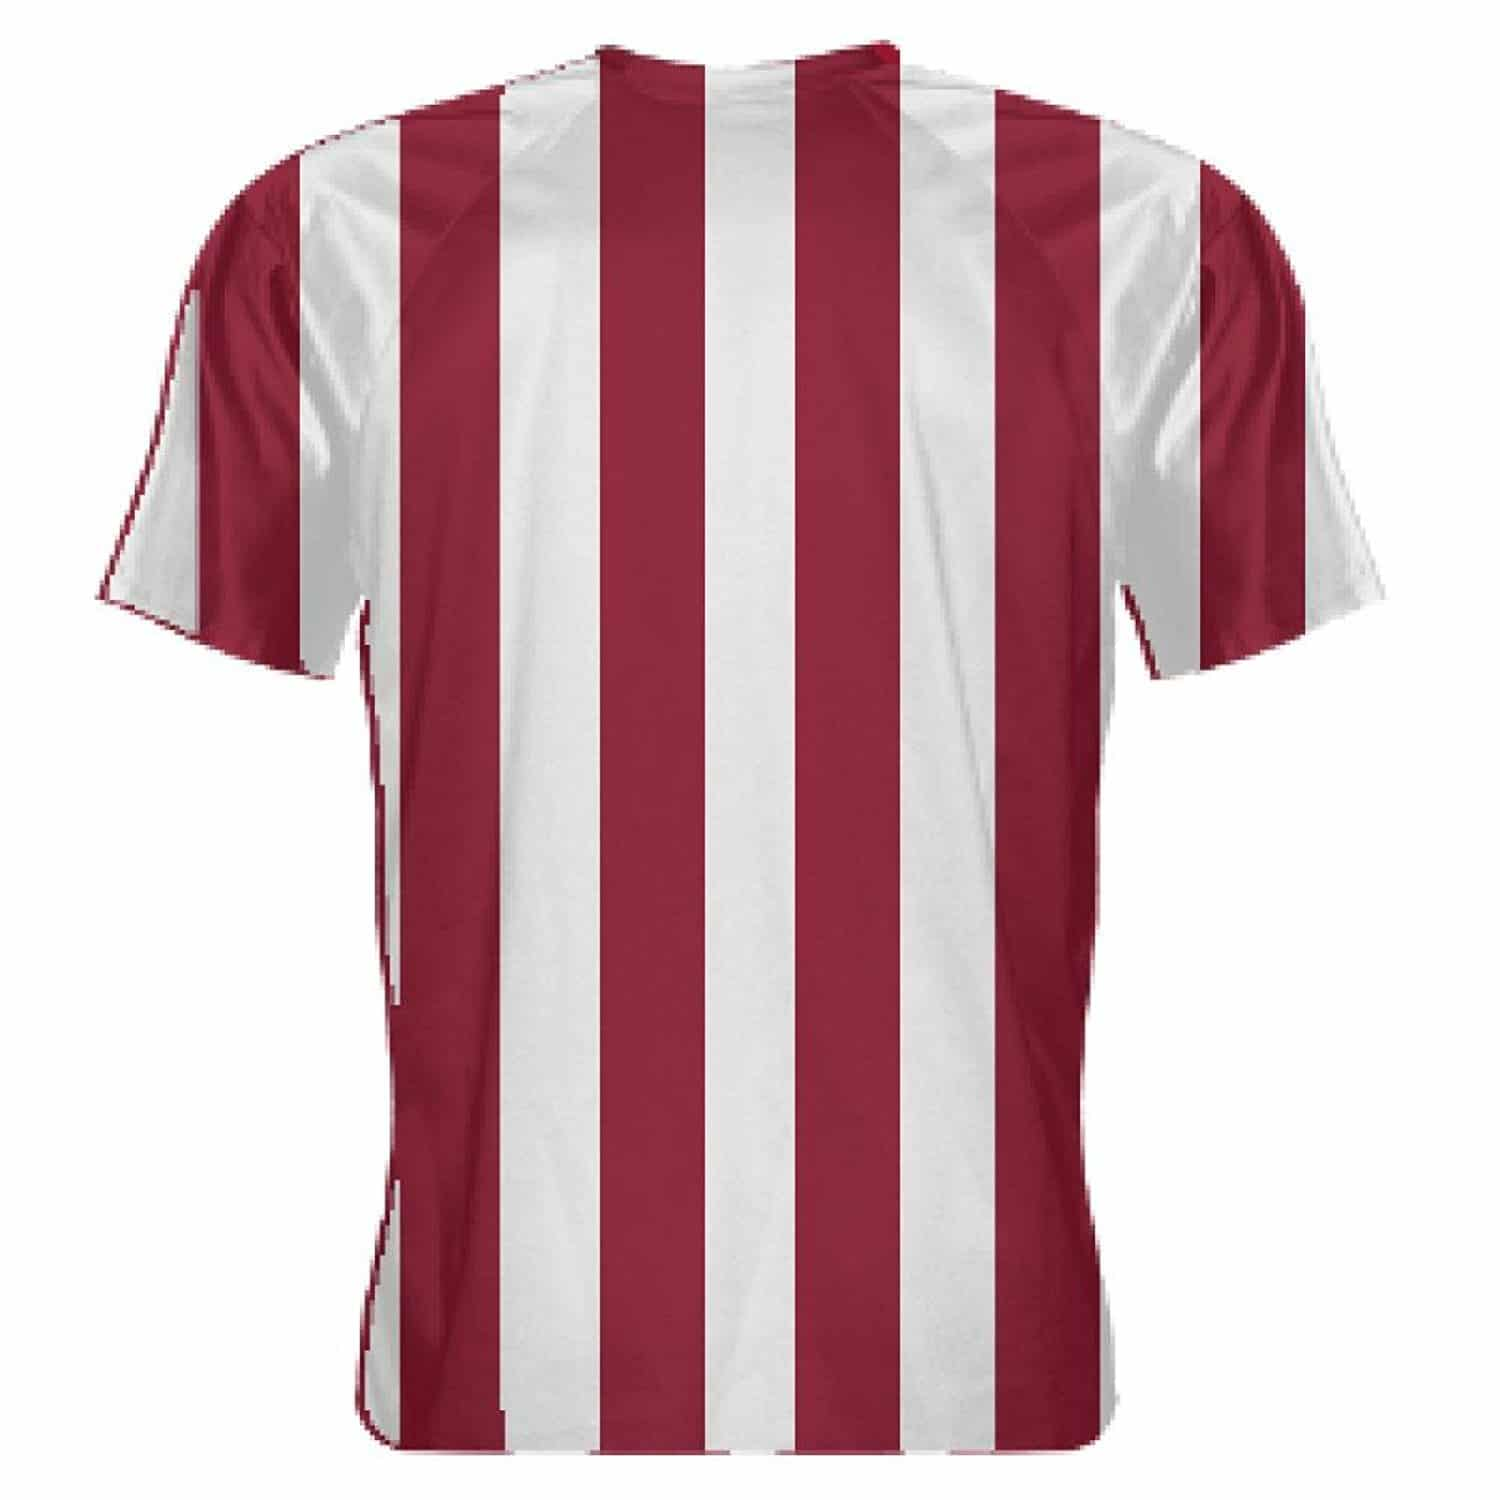 LightningWear-Cardinal-Red-and-White-Soccer-Jerseys-Striped-Soccer-Shirts-B078NGV8GD-2